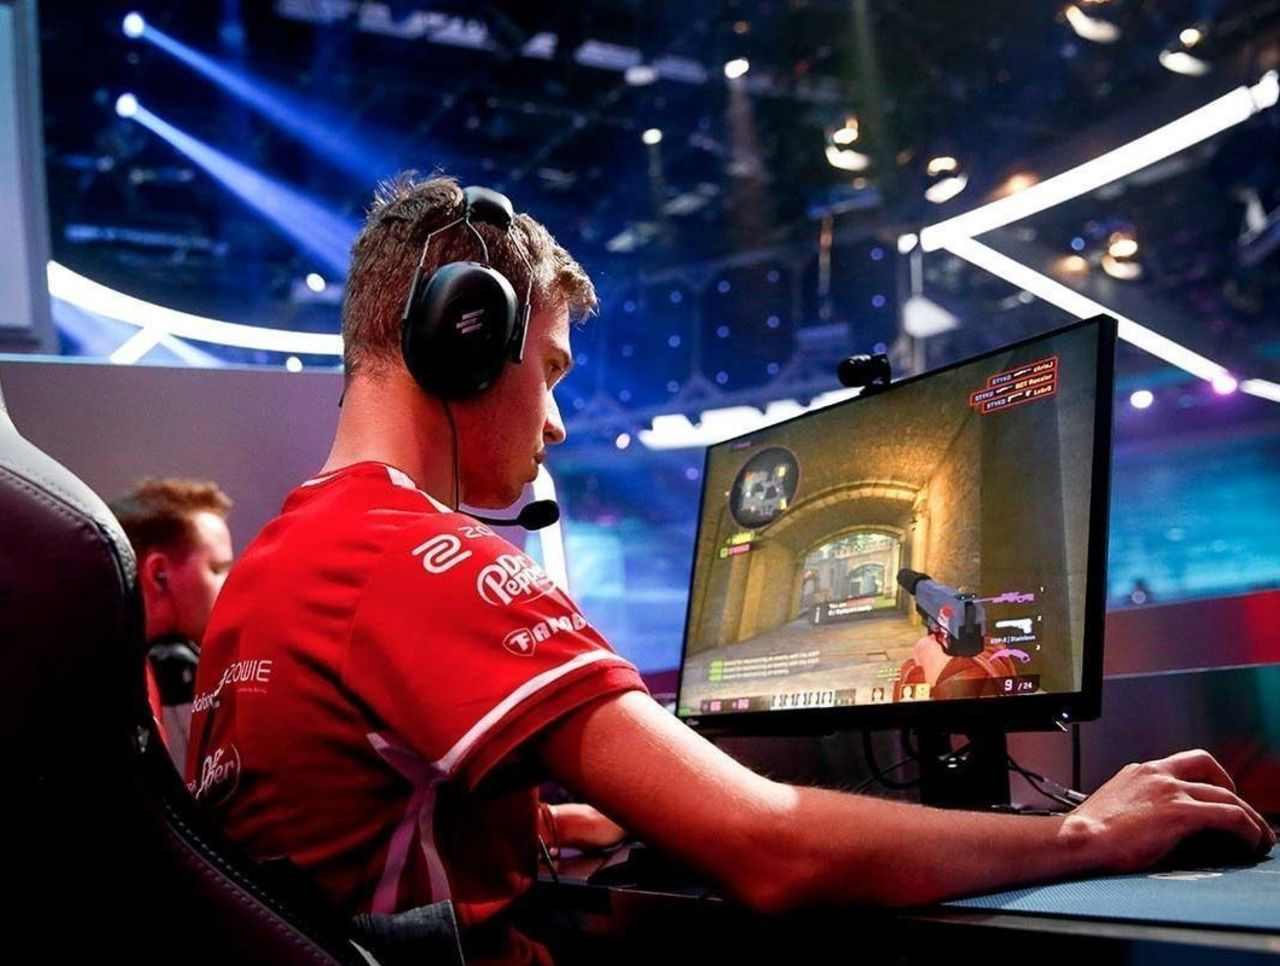 theScore esports Daily (Feb. 4): mouz release STYKO and ChrisJ from active roster, MKLeo claims Smash Ultimate title at Genesis 6 and ave steps down as North's coach